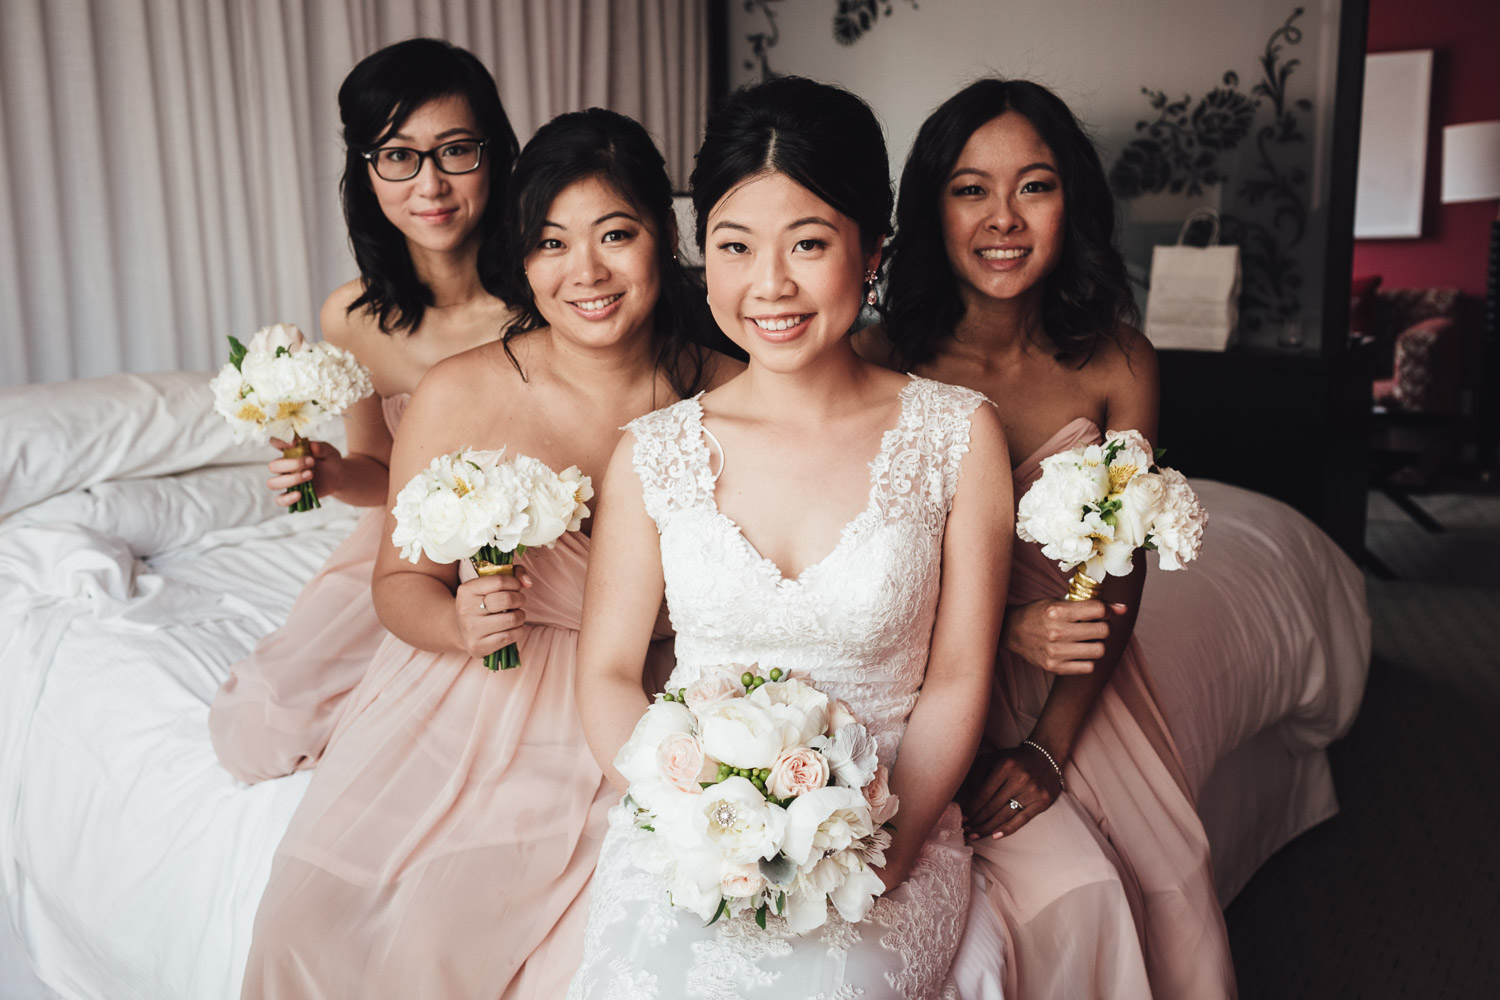 bride and bridesmaids in opus hotel in vancouver bc wedding photography